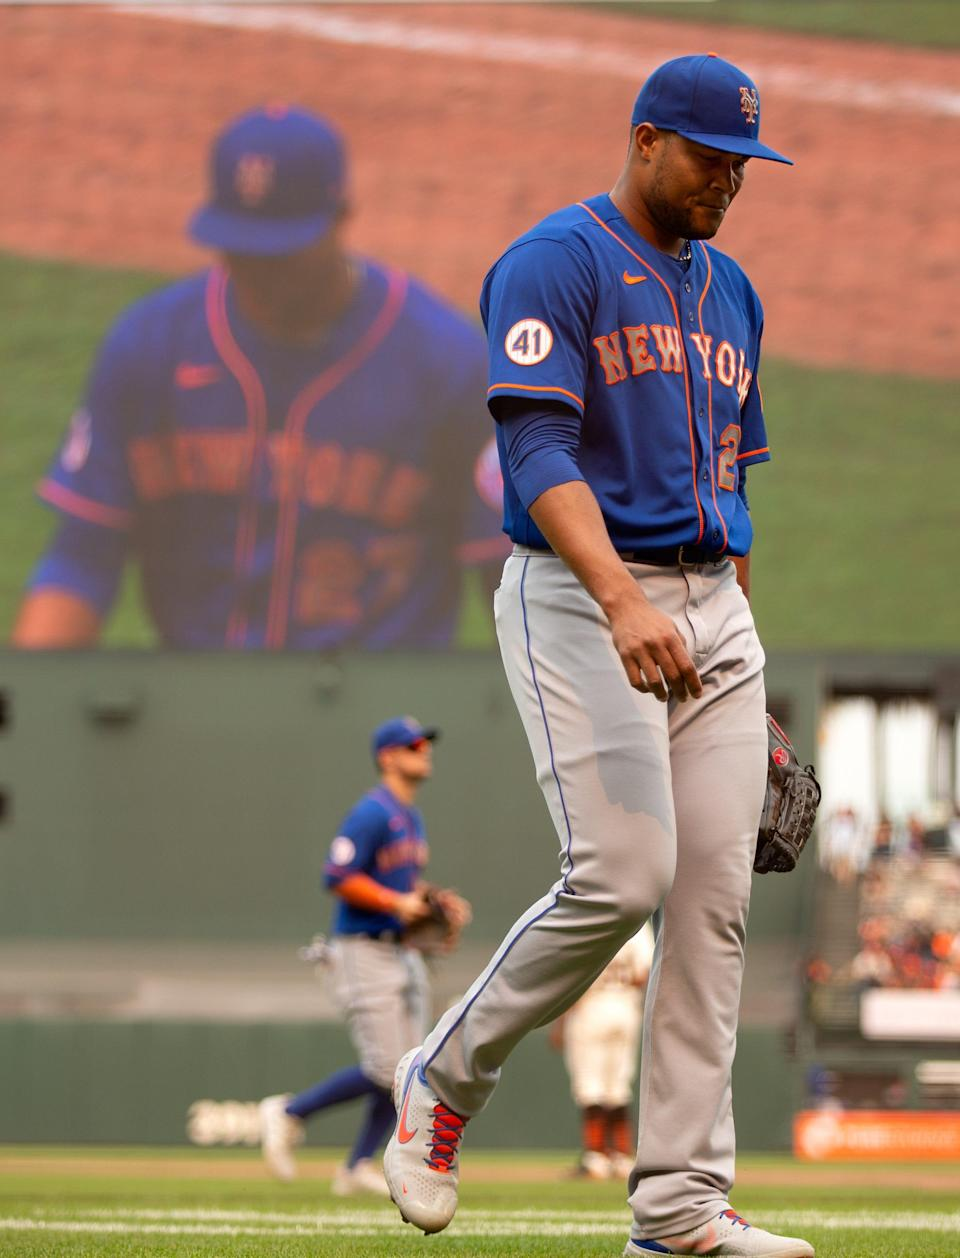 The New York Mets have not fared well in one-run games recently.